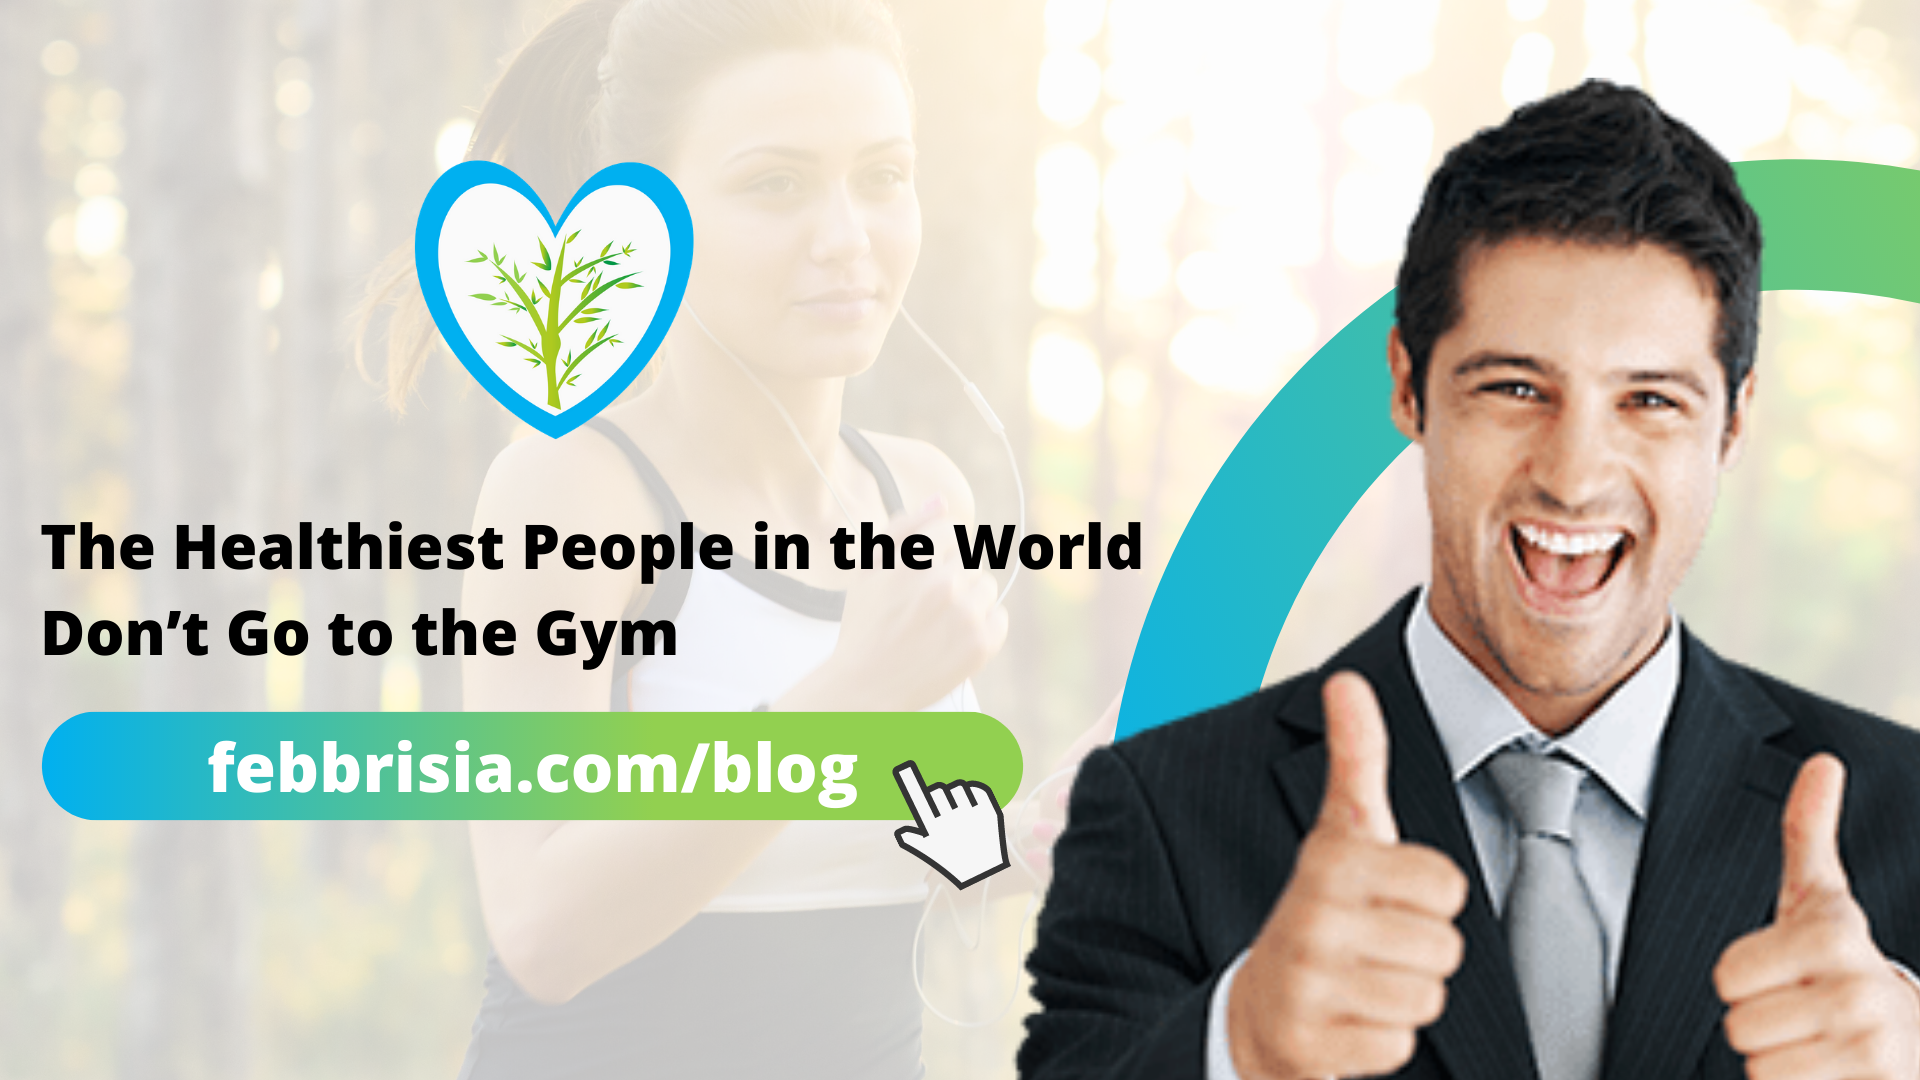 The Healthiest People in the World Don't Go to the Gym